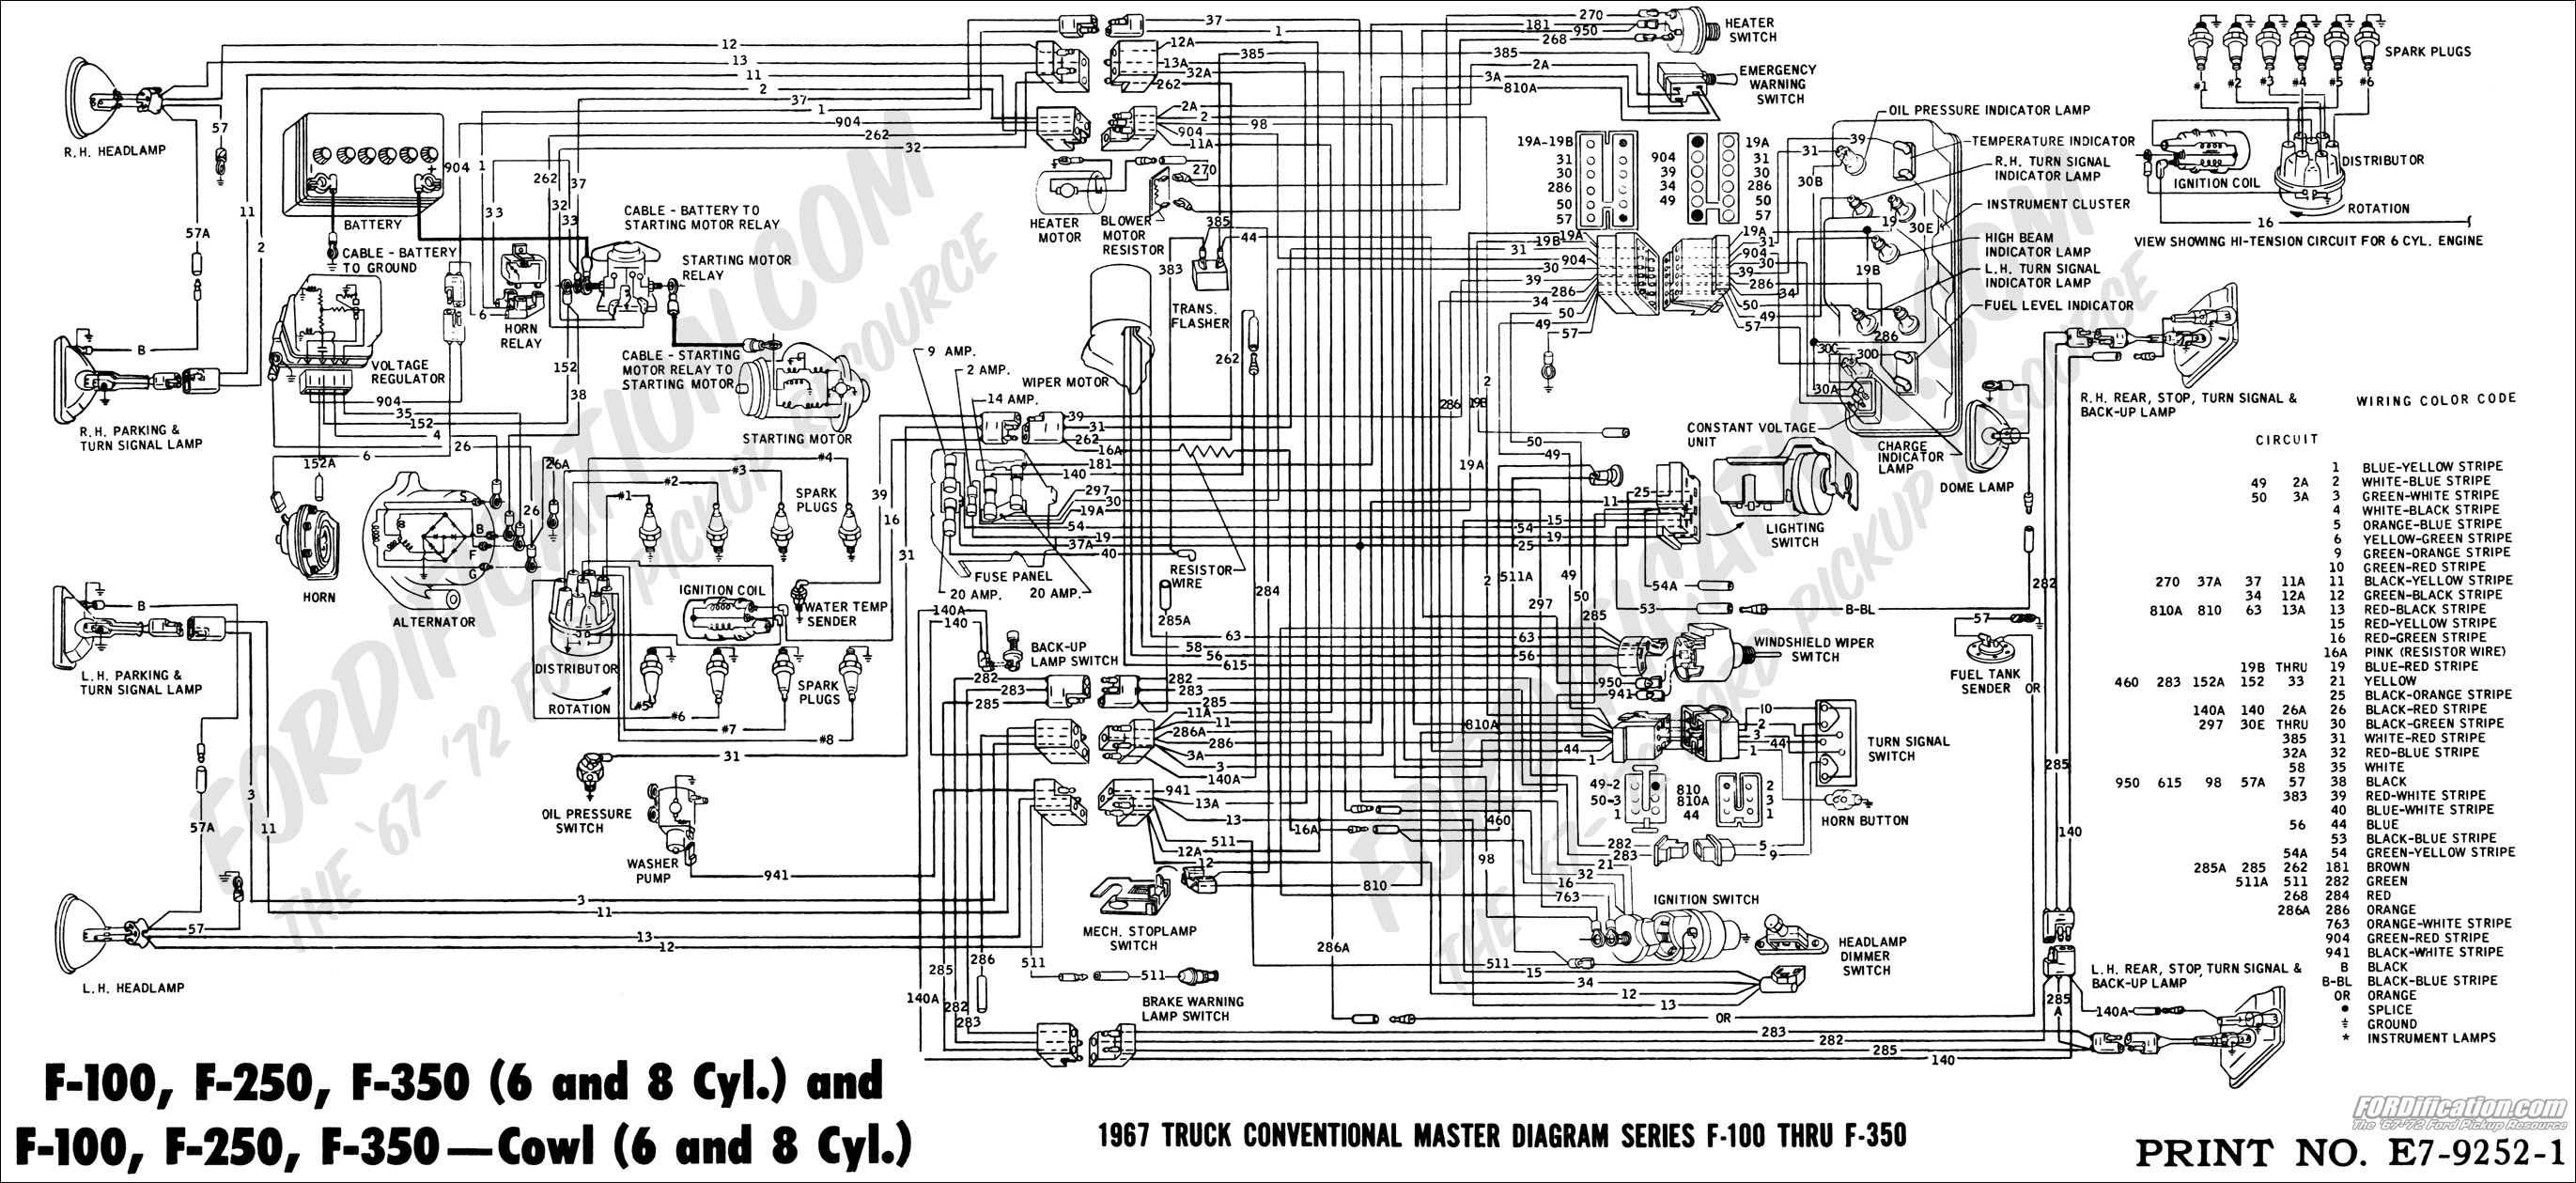 1983 Ford Mustang Alternator Wiring Diagram Free Picture Just 1990 2 3 Wire Harness For Vans Data 1971